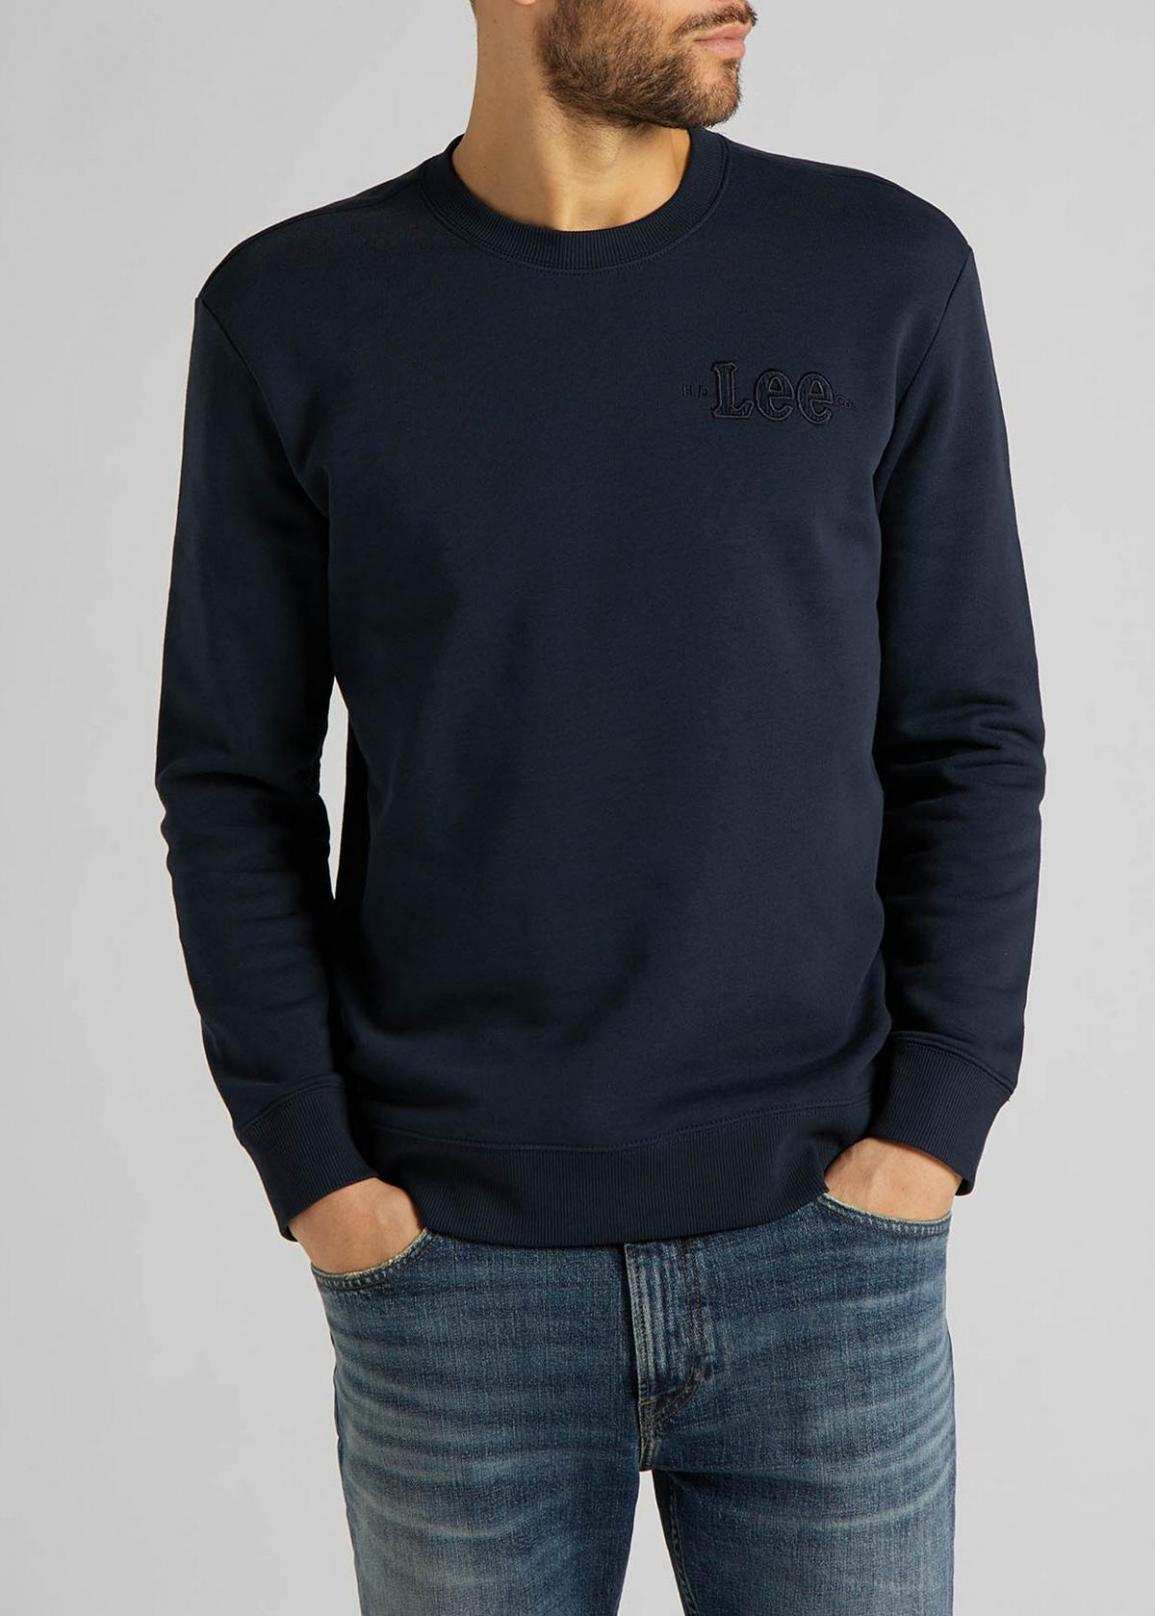 Lee® Refined Applique Sweatshirt - Sky Captain